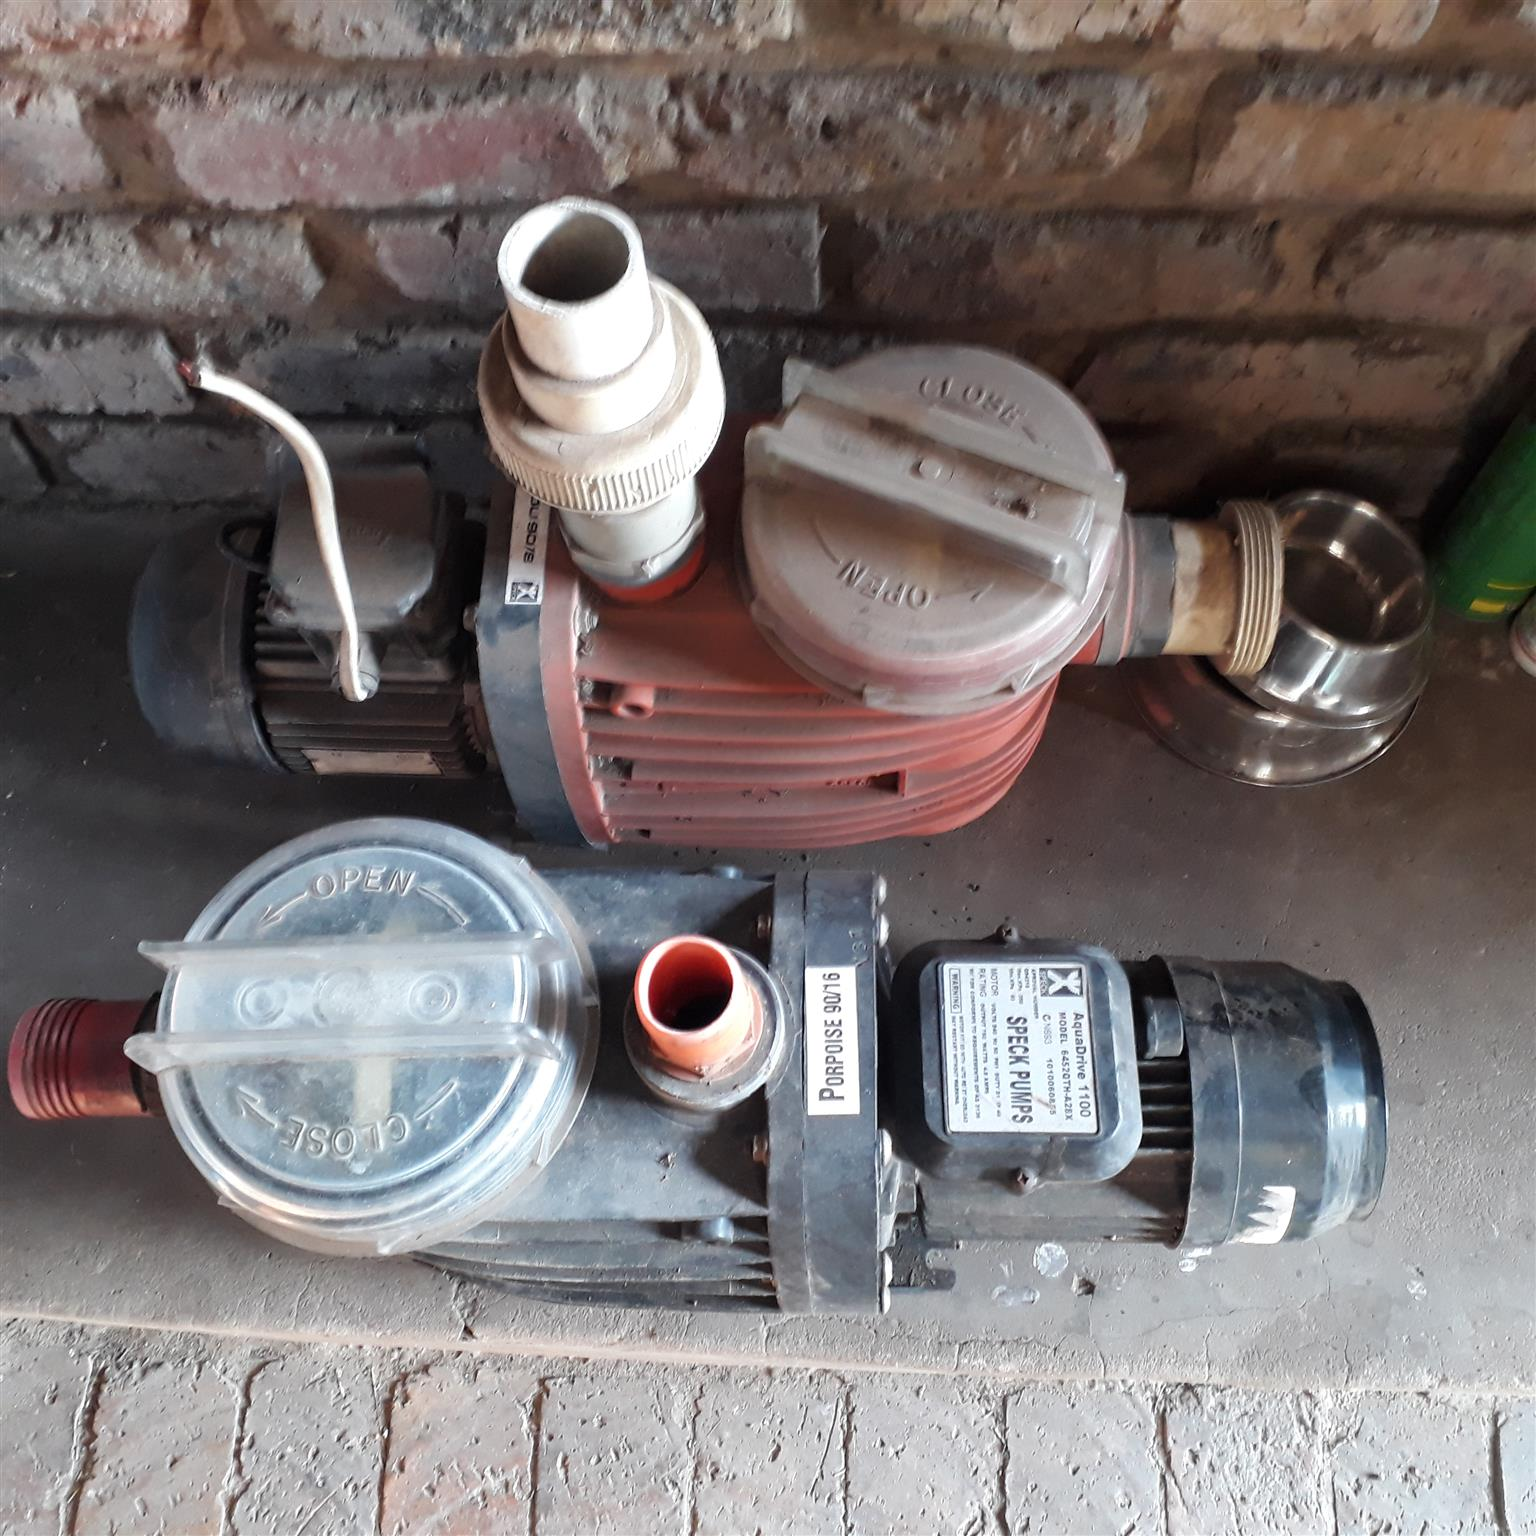 SPECK Pool Pumps FOR SALE - running in good order: